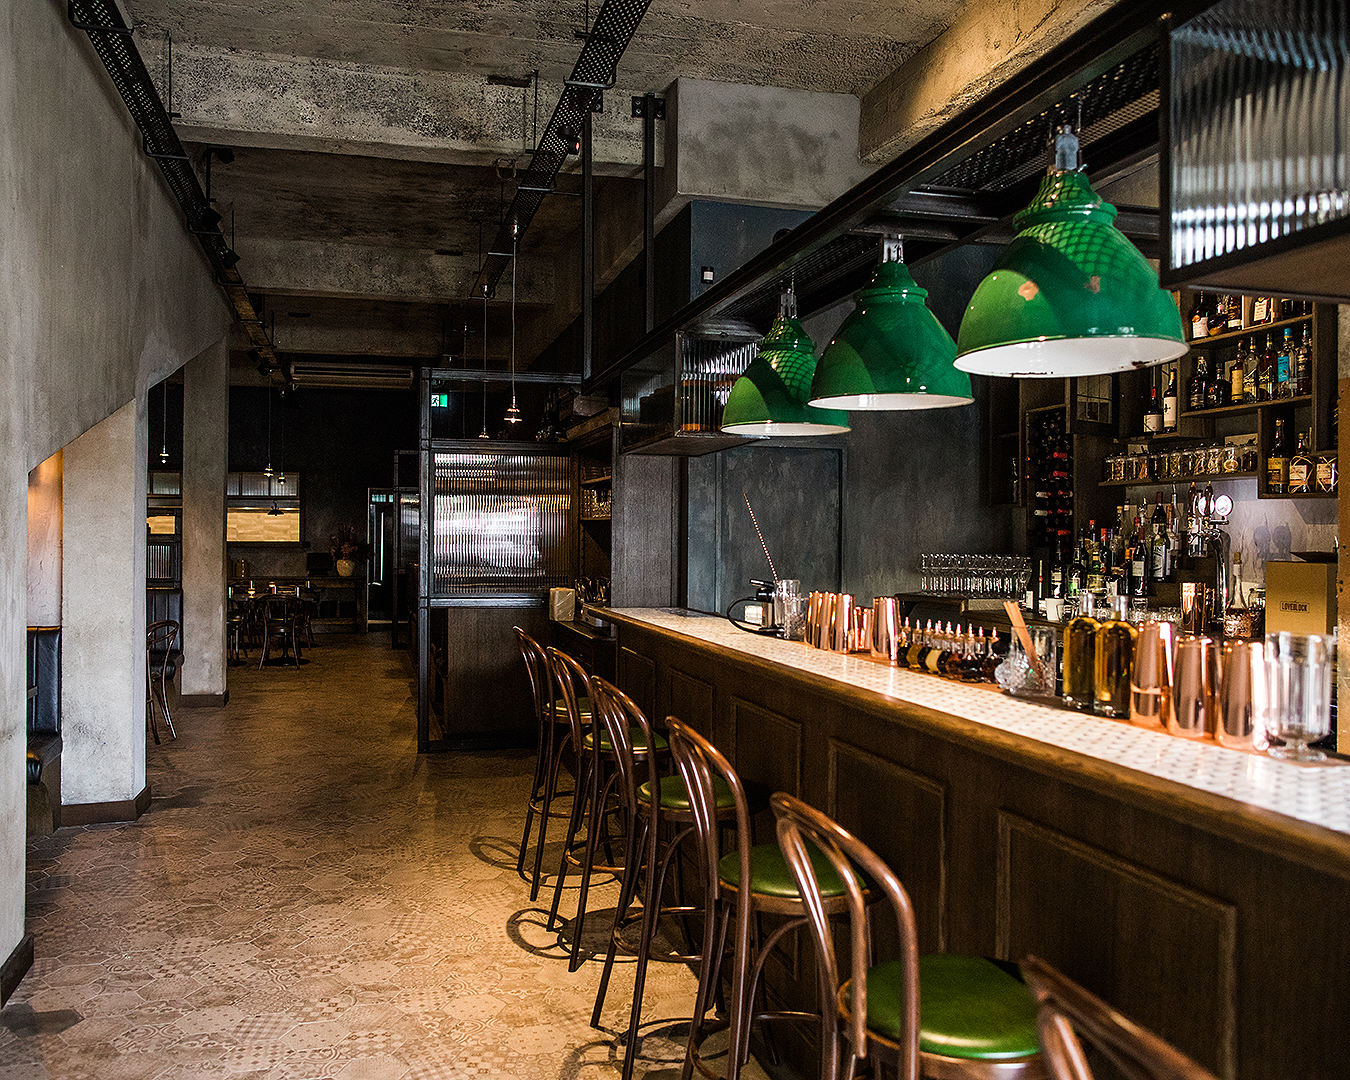 The interior at V.T Station shows green accents and a lovely looking bar.